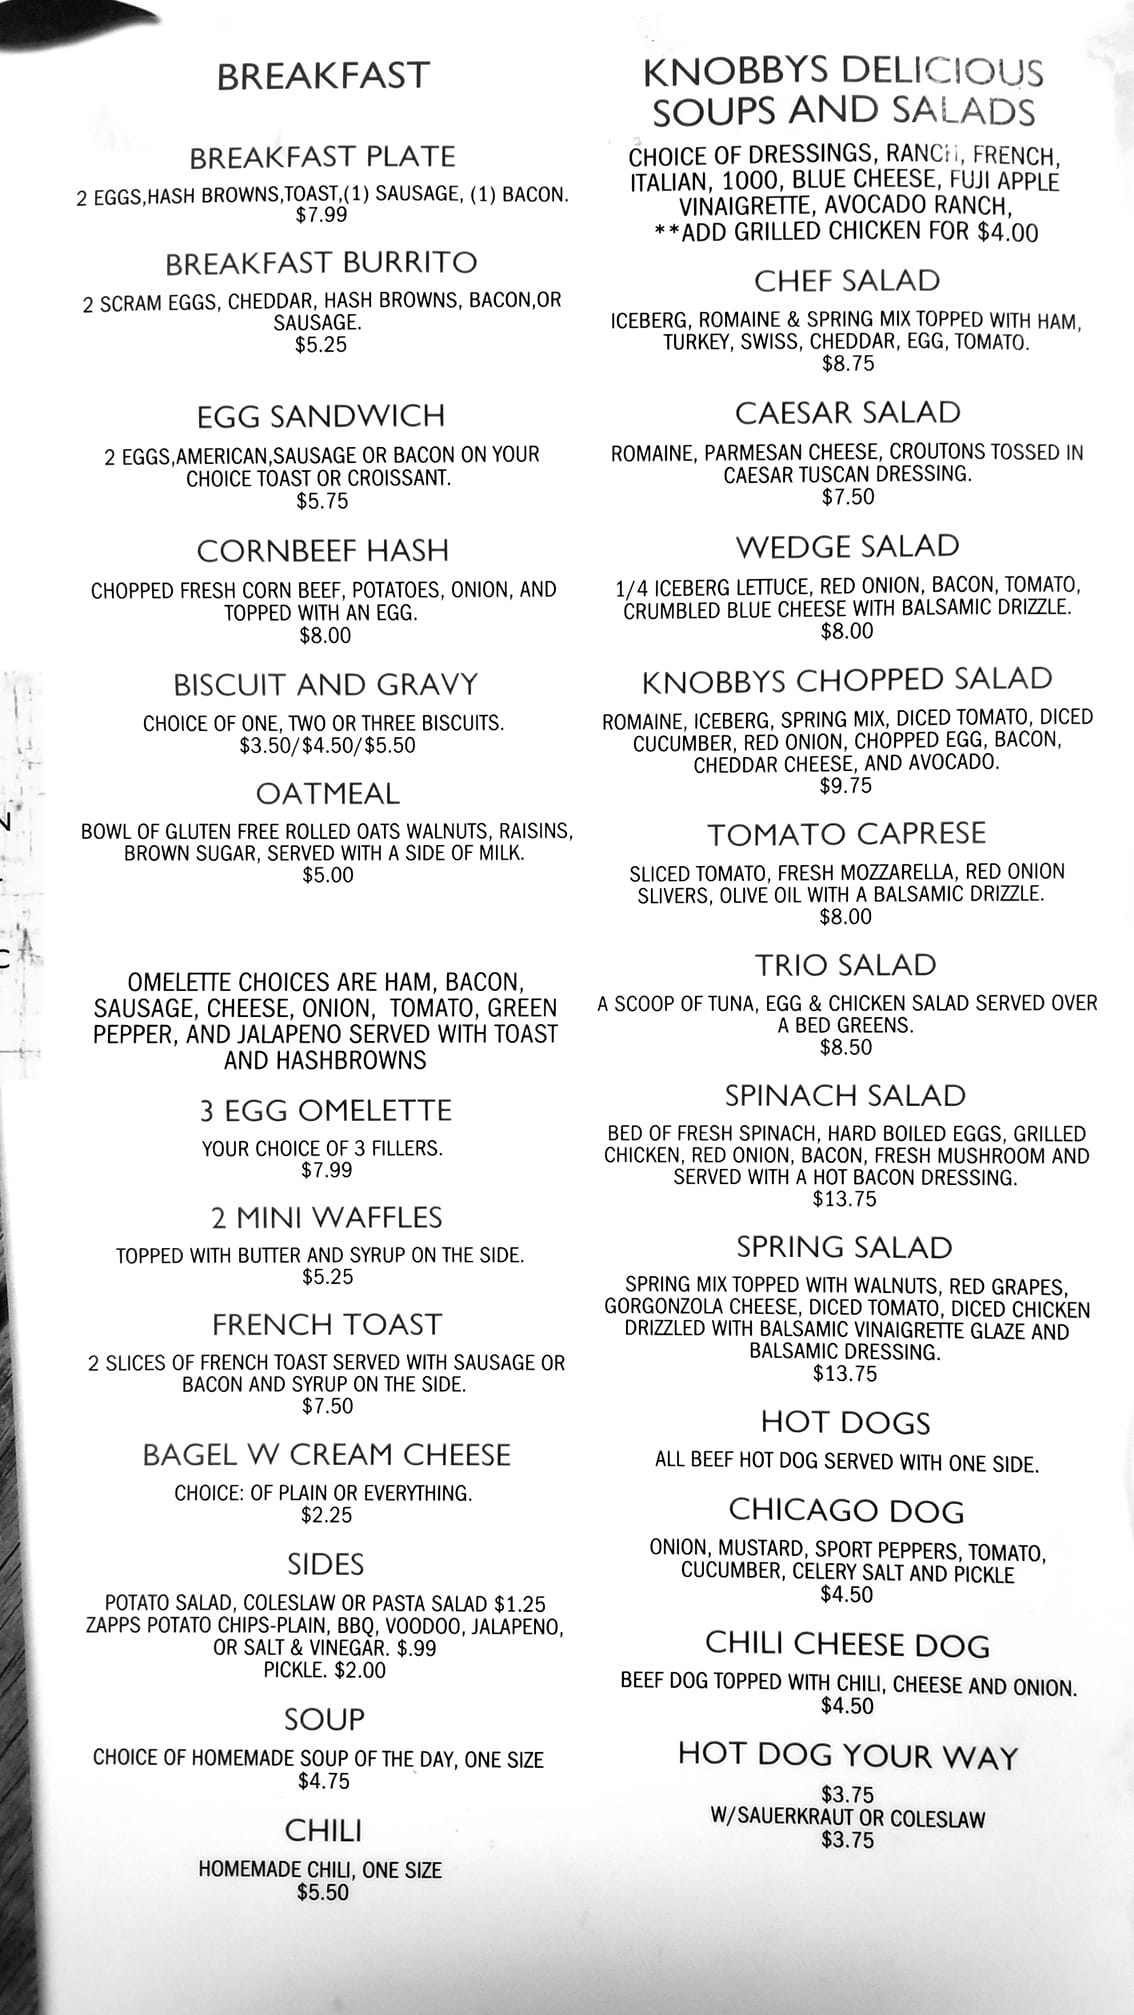 Knobbys Deli General Menu